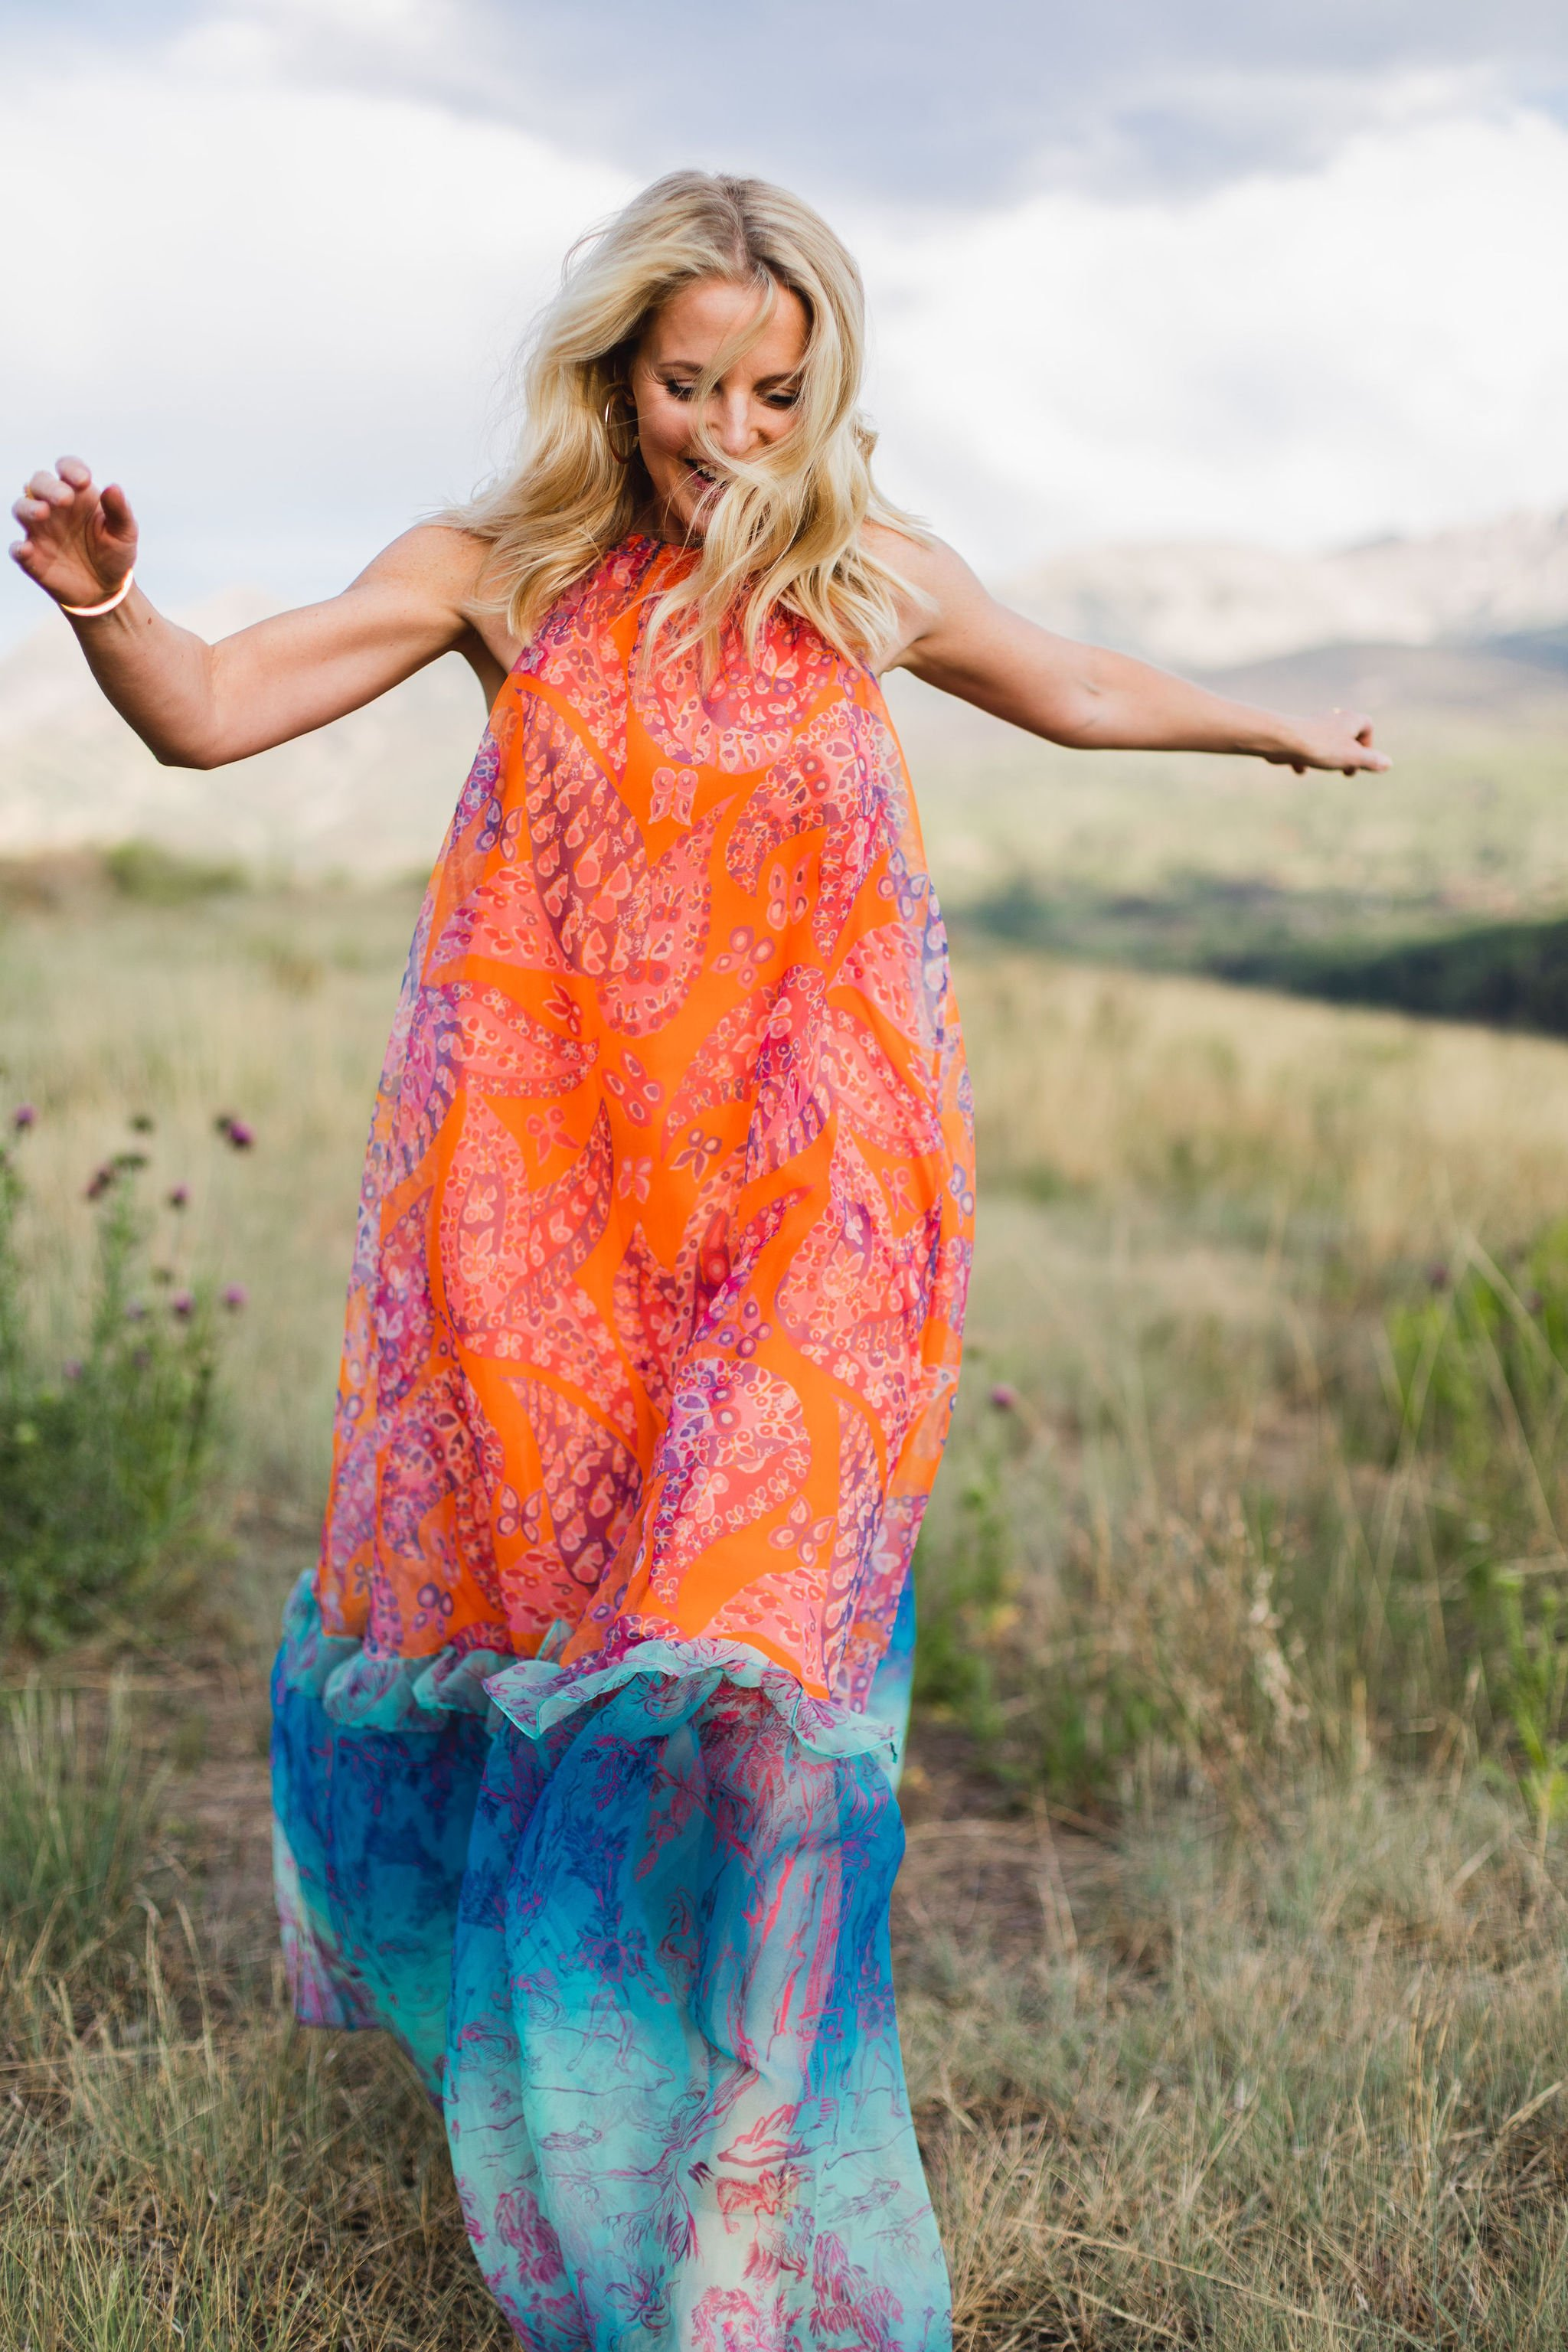 blonde woman wearing trapeze dress in bright colors running through grassy field